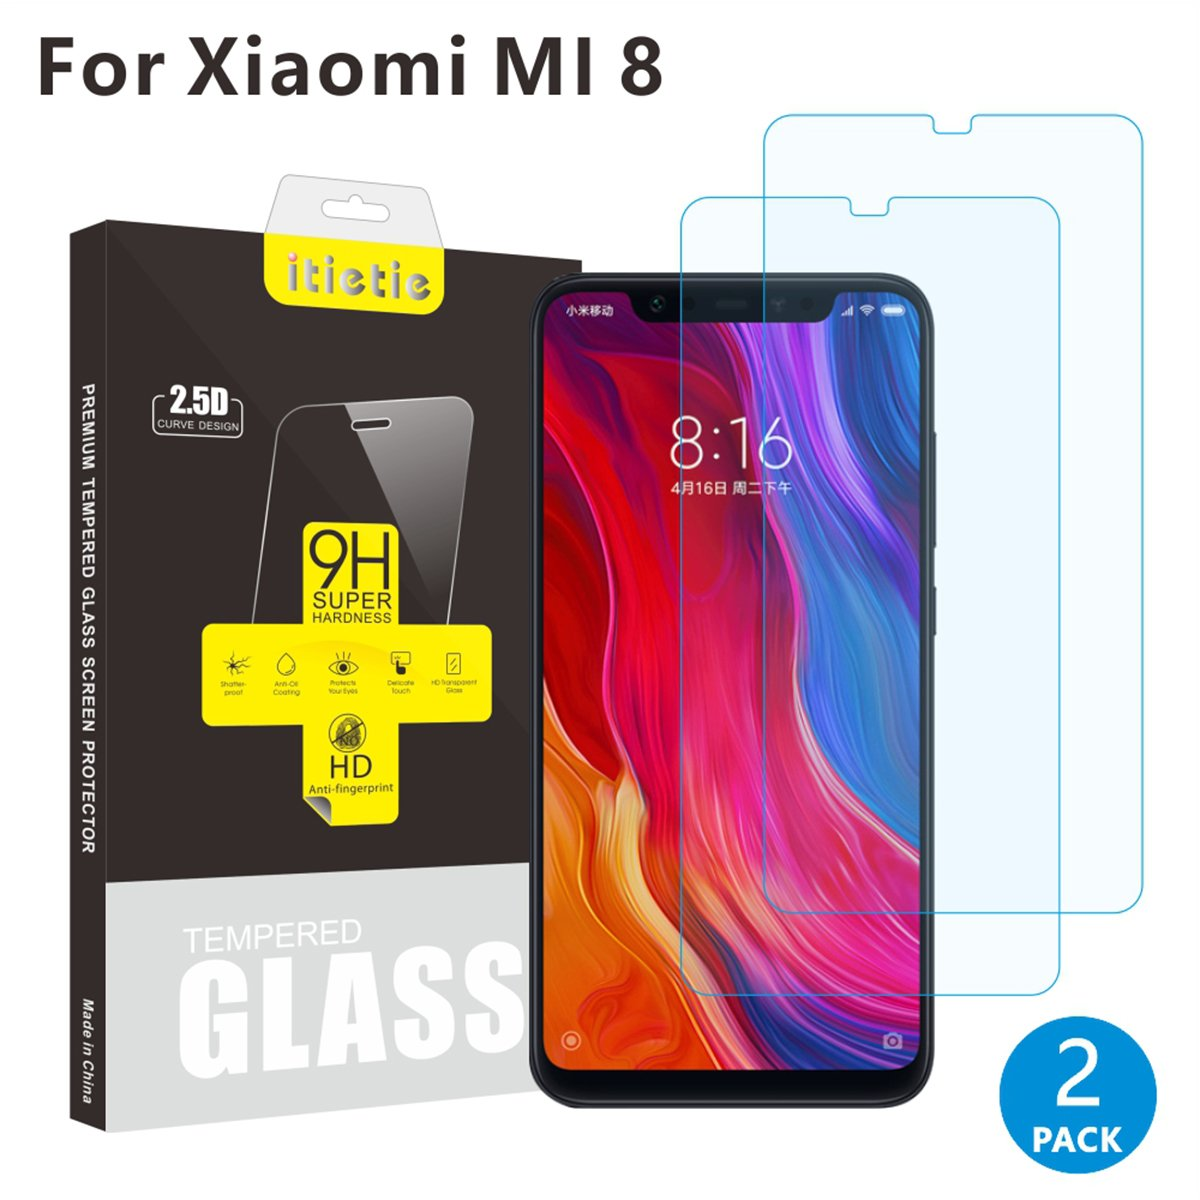 Itietie Screen Protector For Mi 8 2 Pack Ultra Thin 026mm High Xiaomi Se Camera Lens Tempered Glass Clear Definition Anti Scratch 9h Hardness Premium